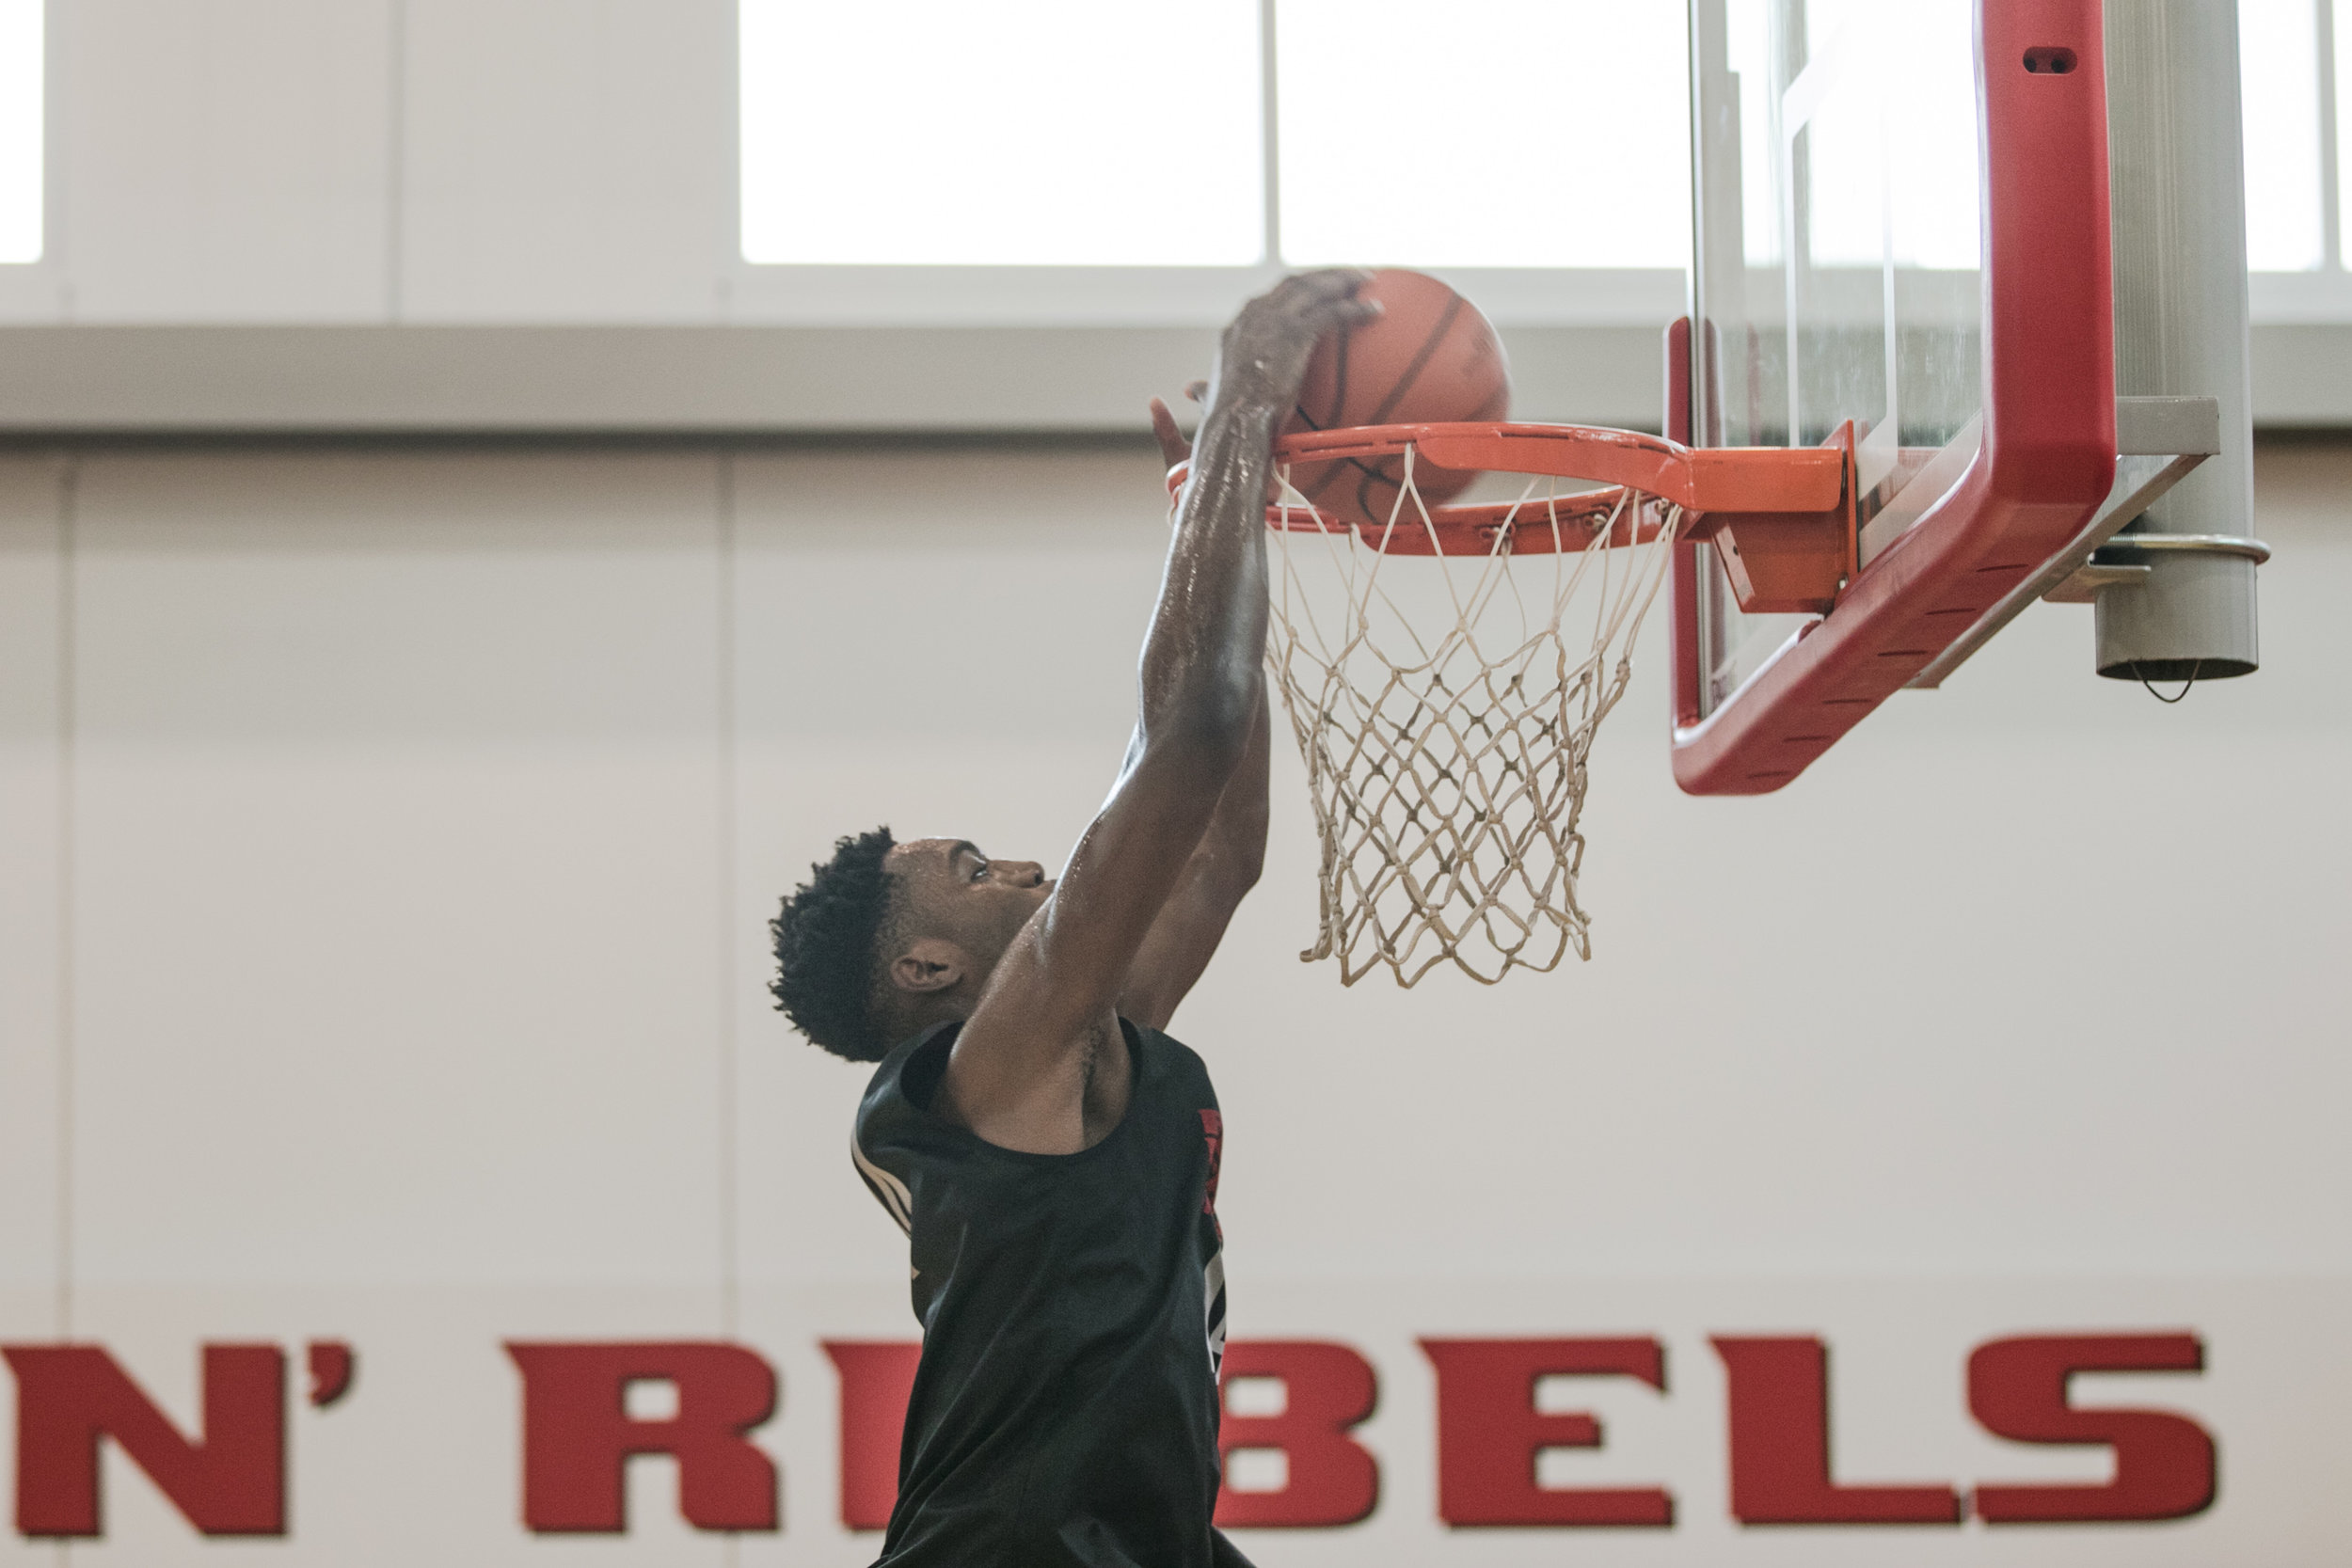 UNLV Men's Basketball top newcomer Brandon McCoy at practice at UNLV Mendenhall Center on Monday, July 31, 2017, in Las Vegas. Morgan Lieberman Las Vegas Review-Journal